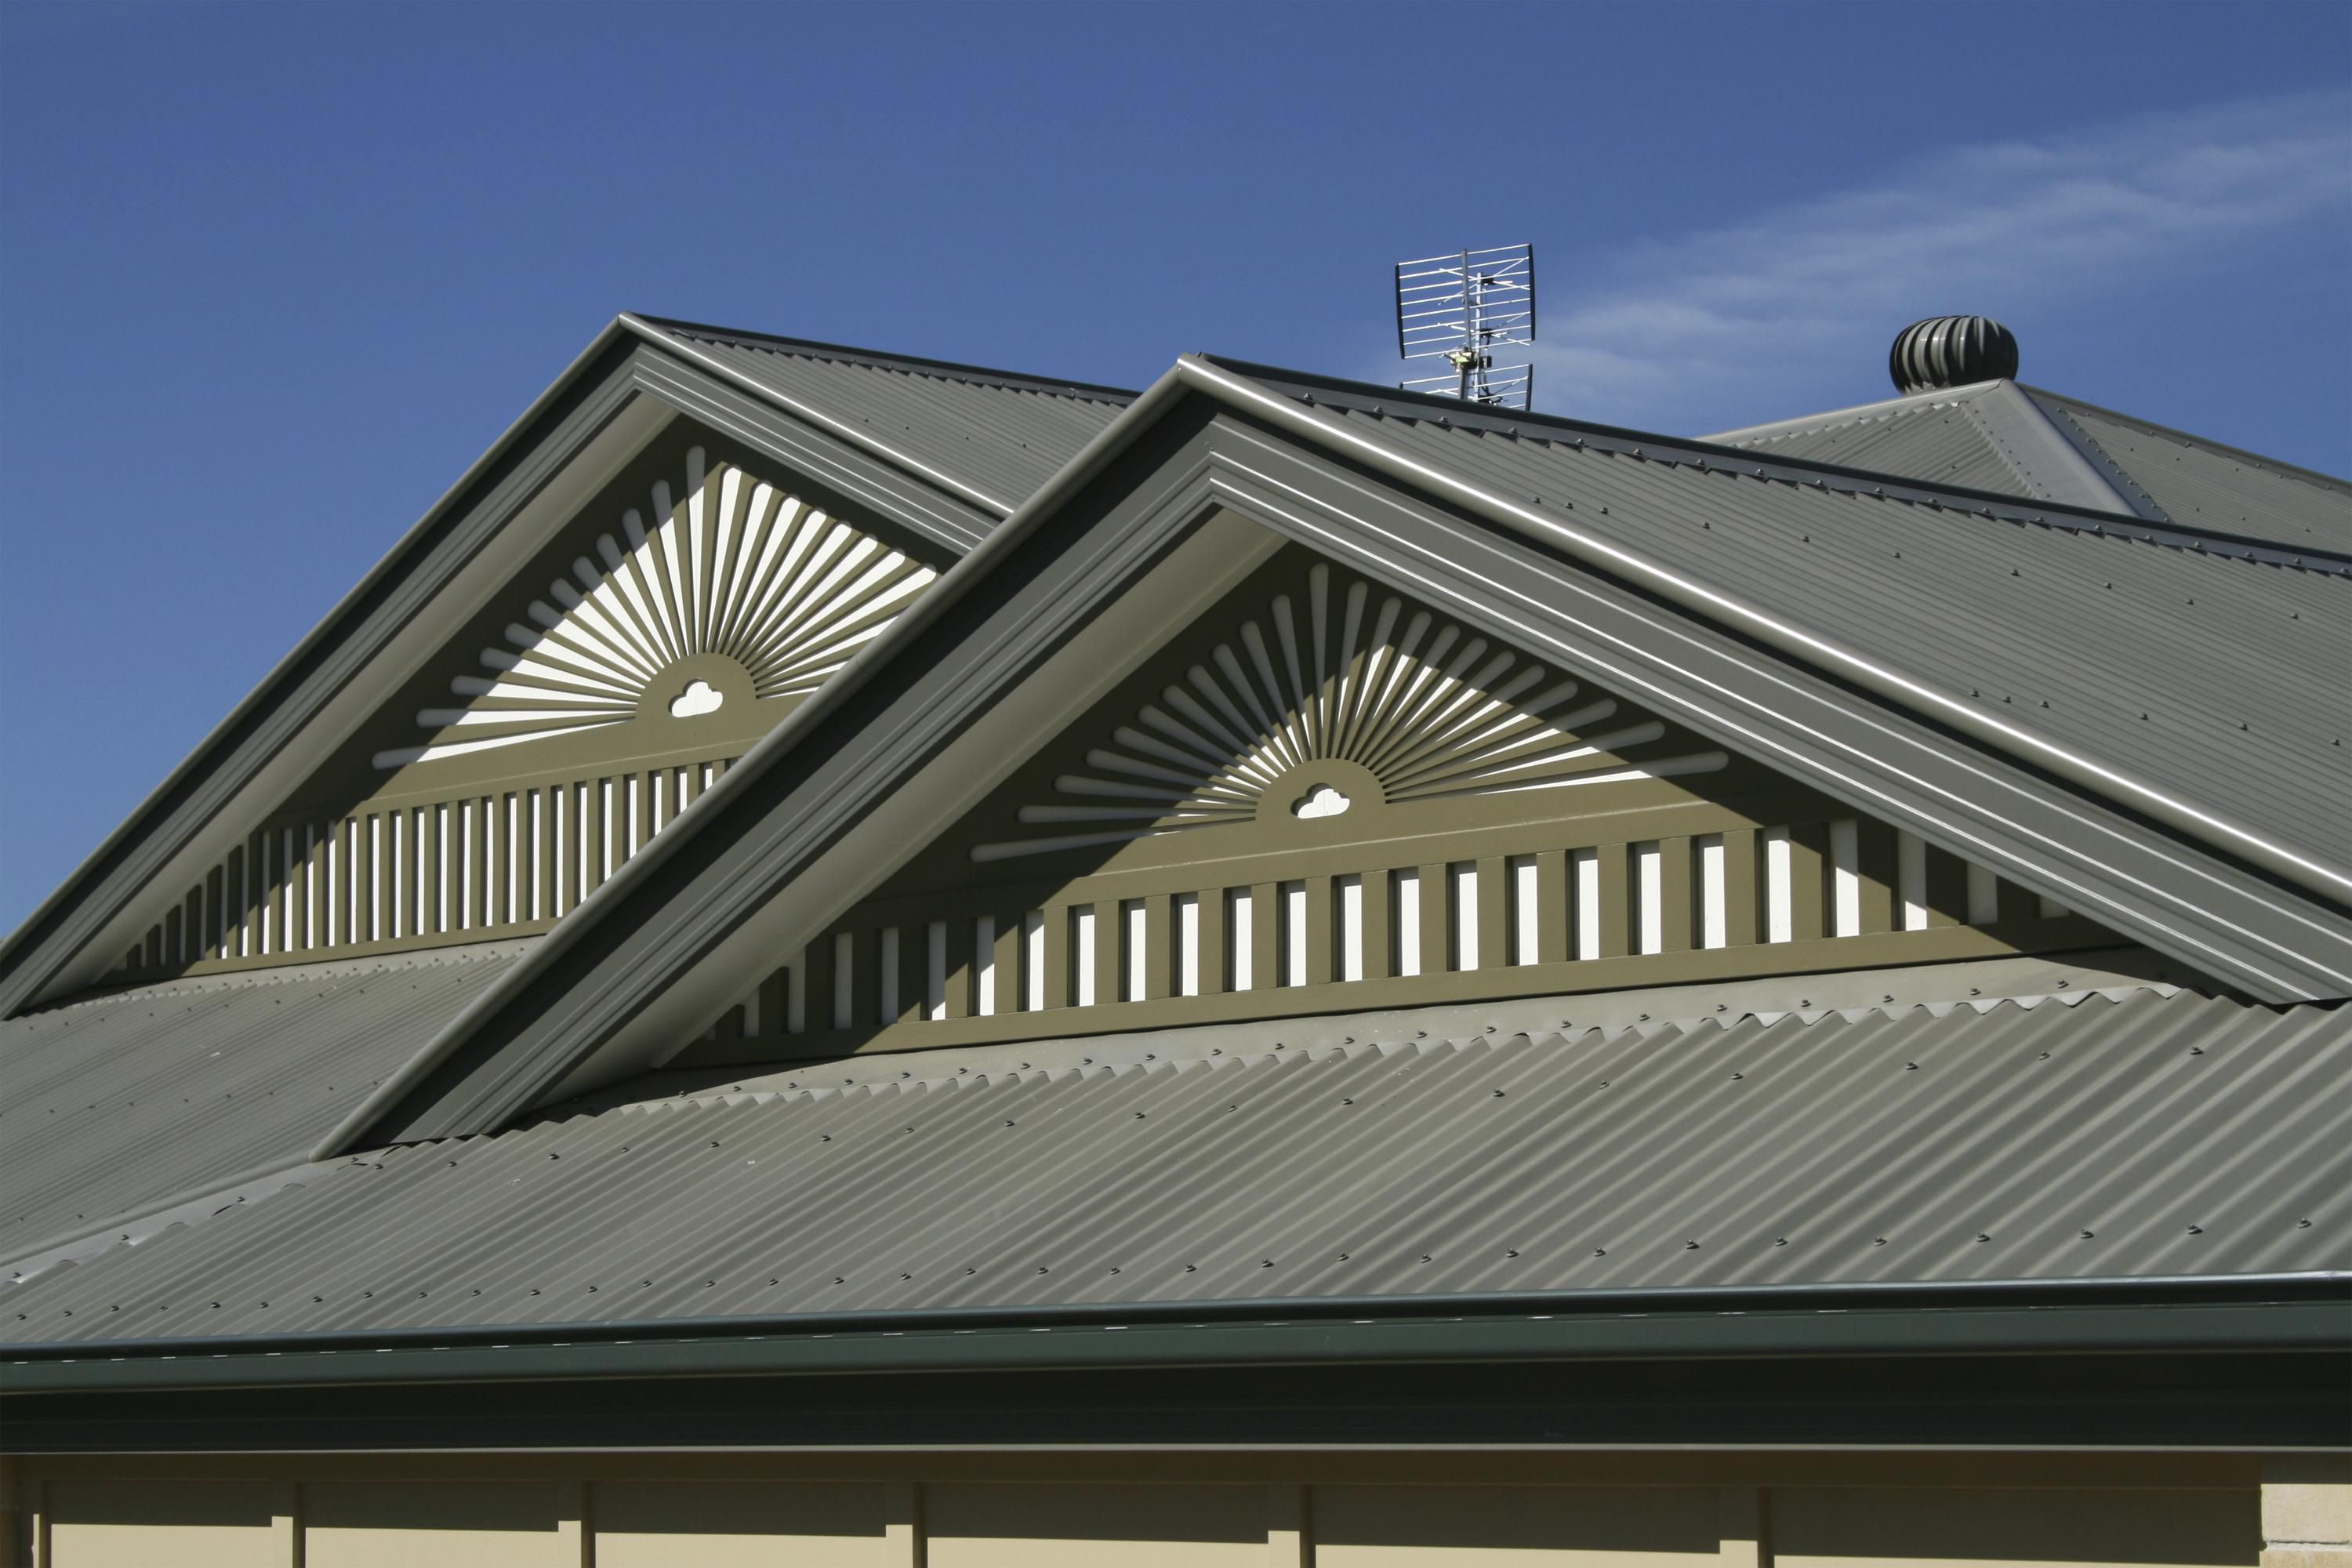 Quality roofing job begins before the shingles go on home remodeling - Asphalt Shingle Roofing 101 Home Exterior Basics